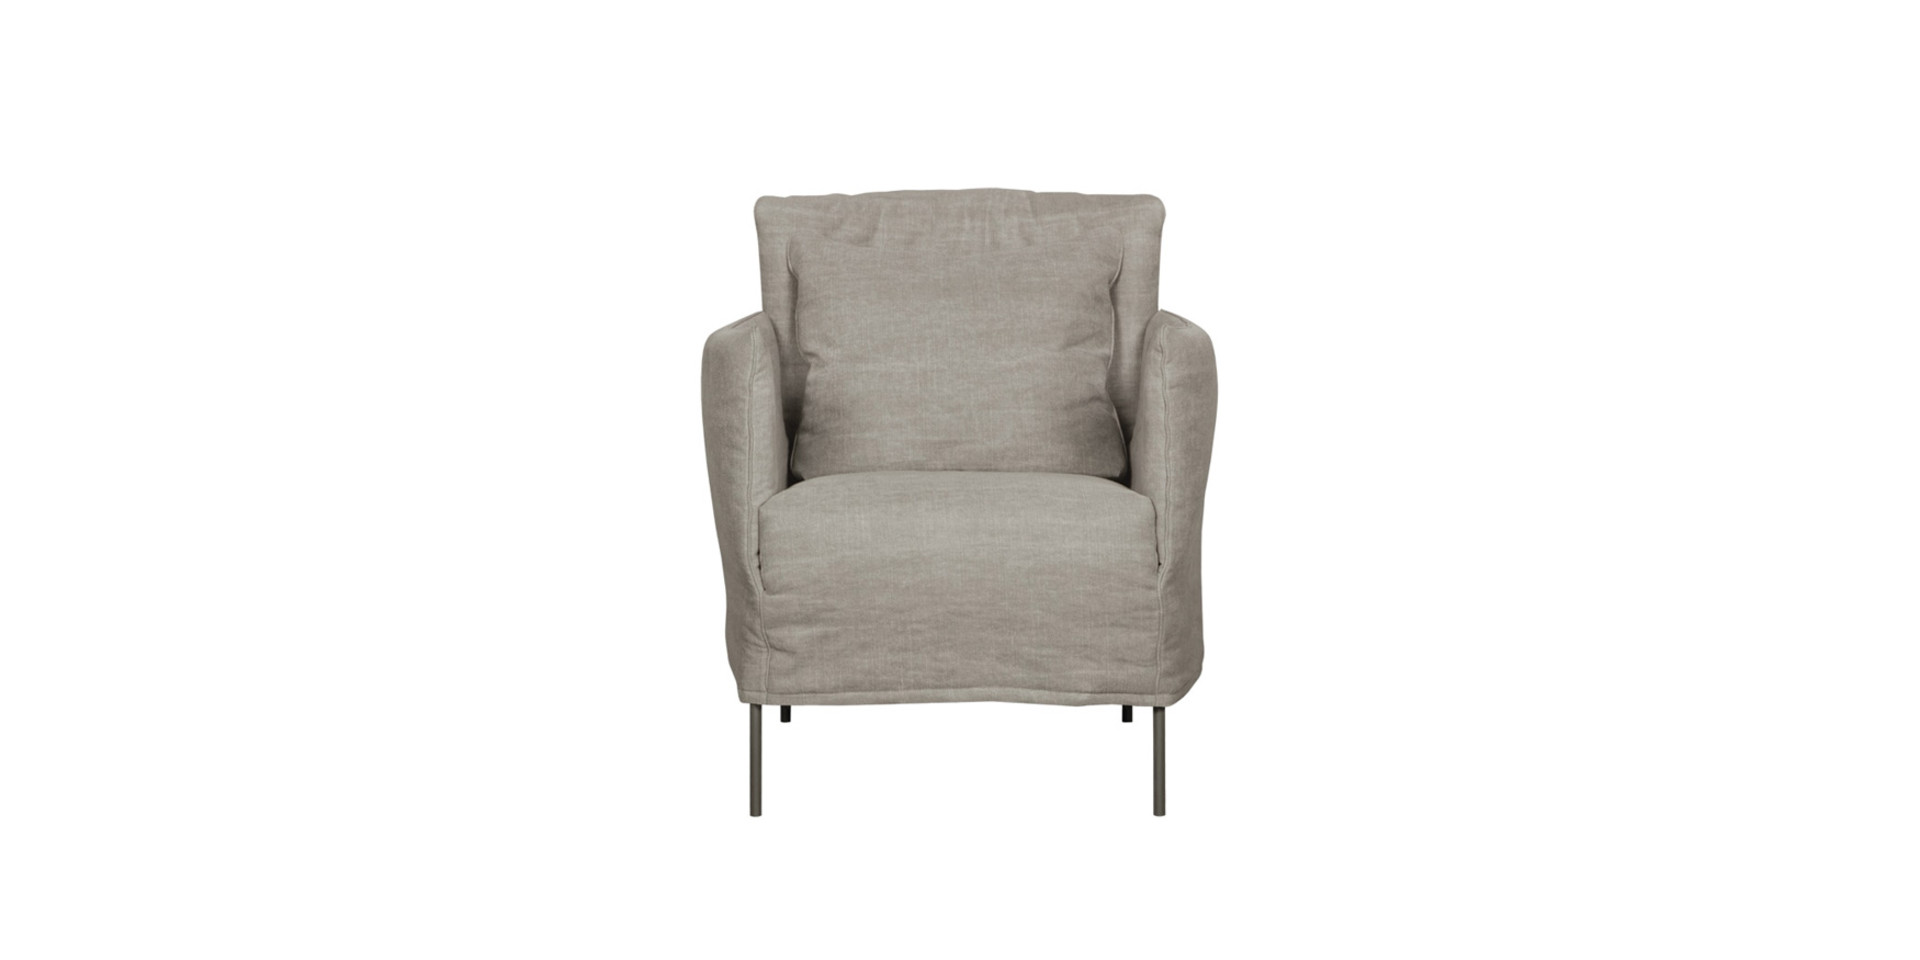 sits-cute-fauteuil-2_king2_beige_2